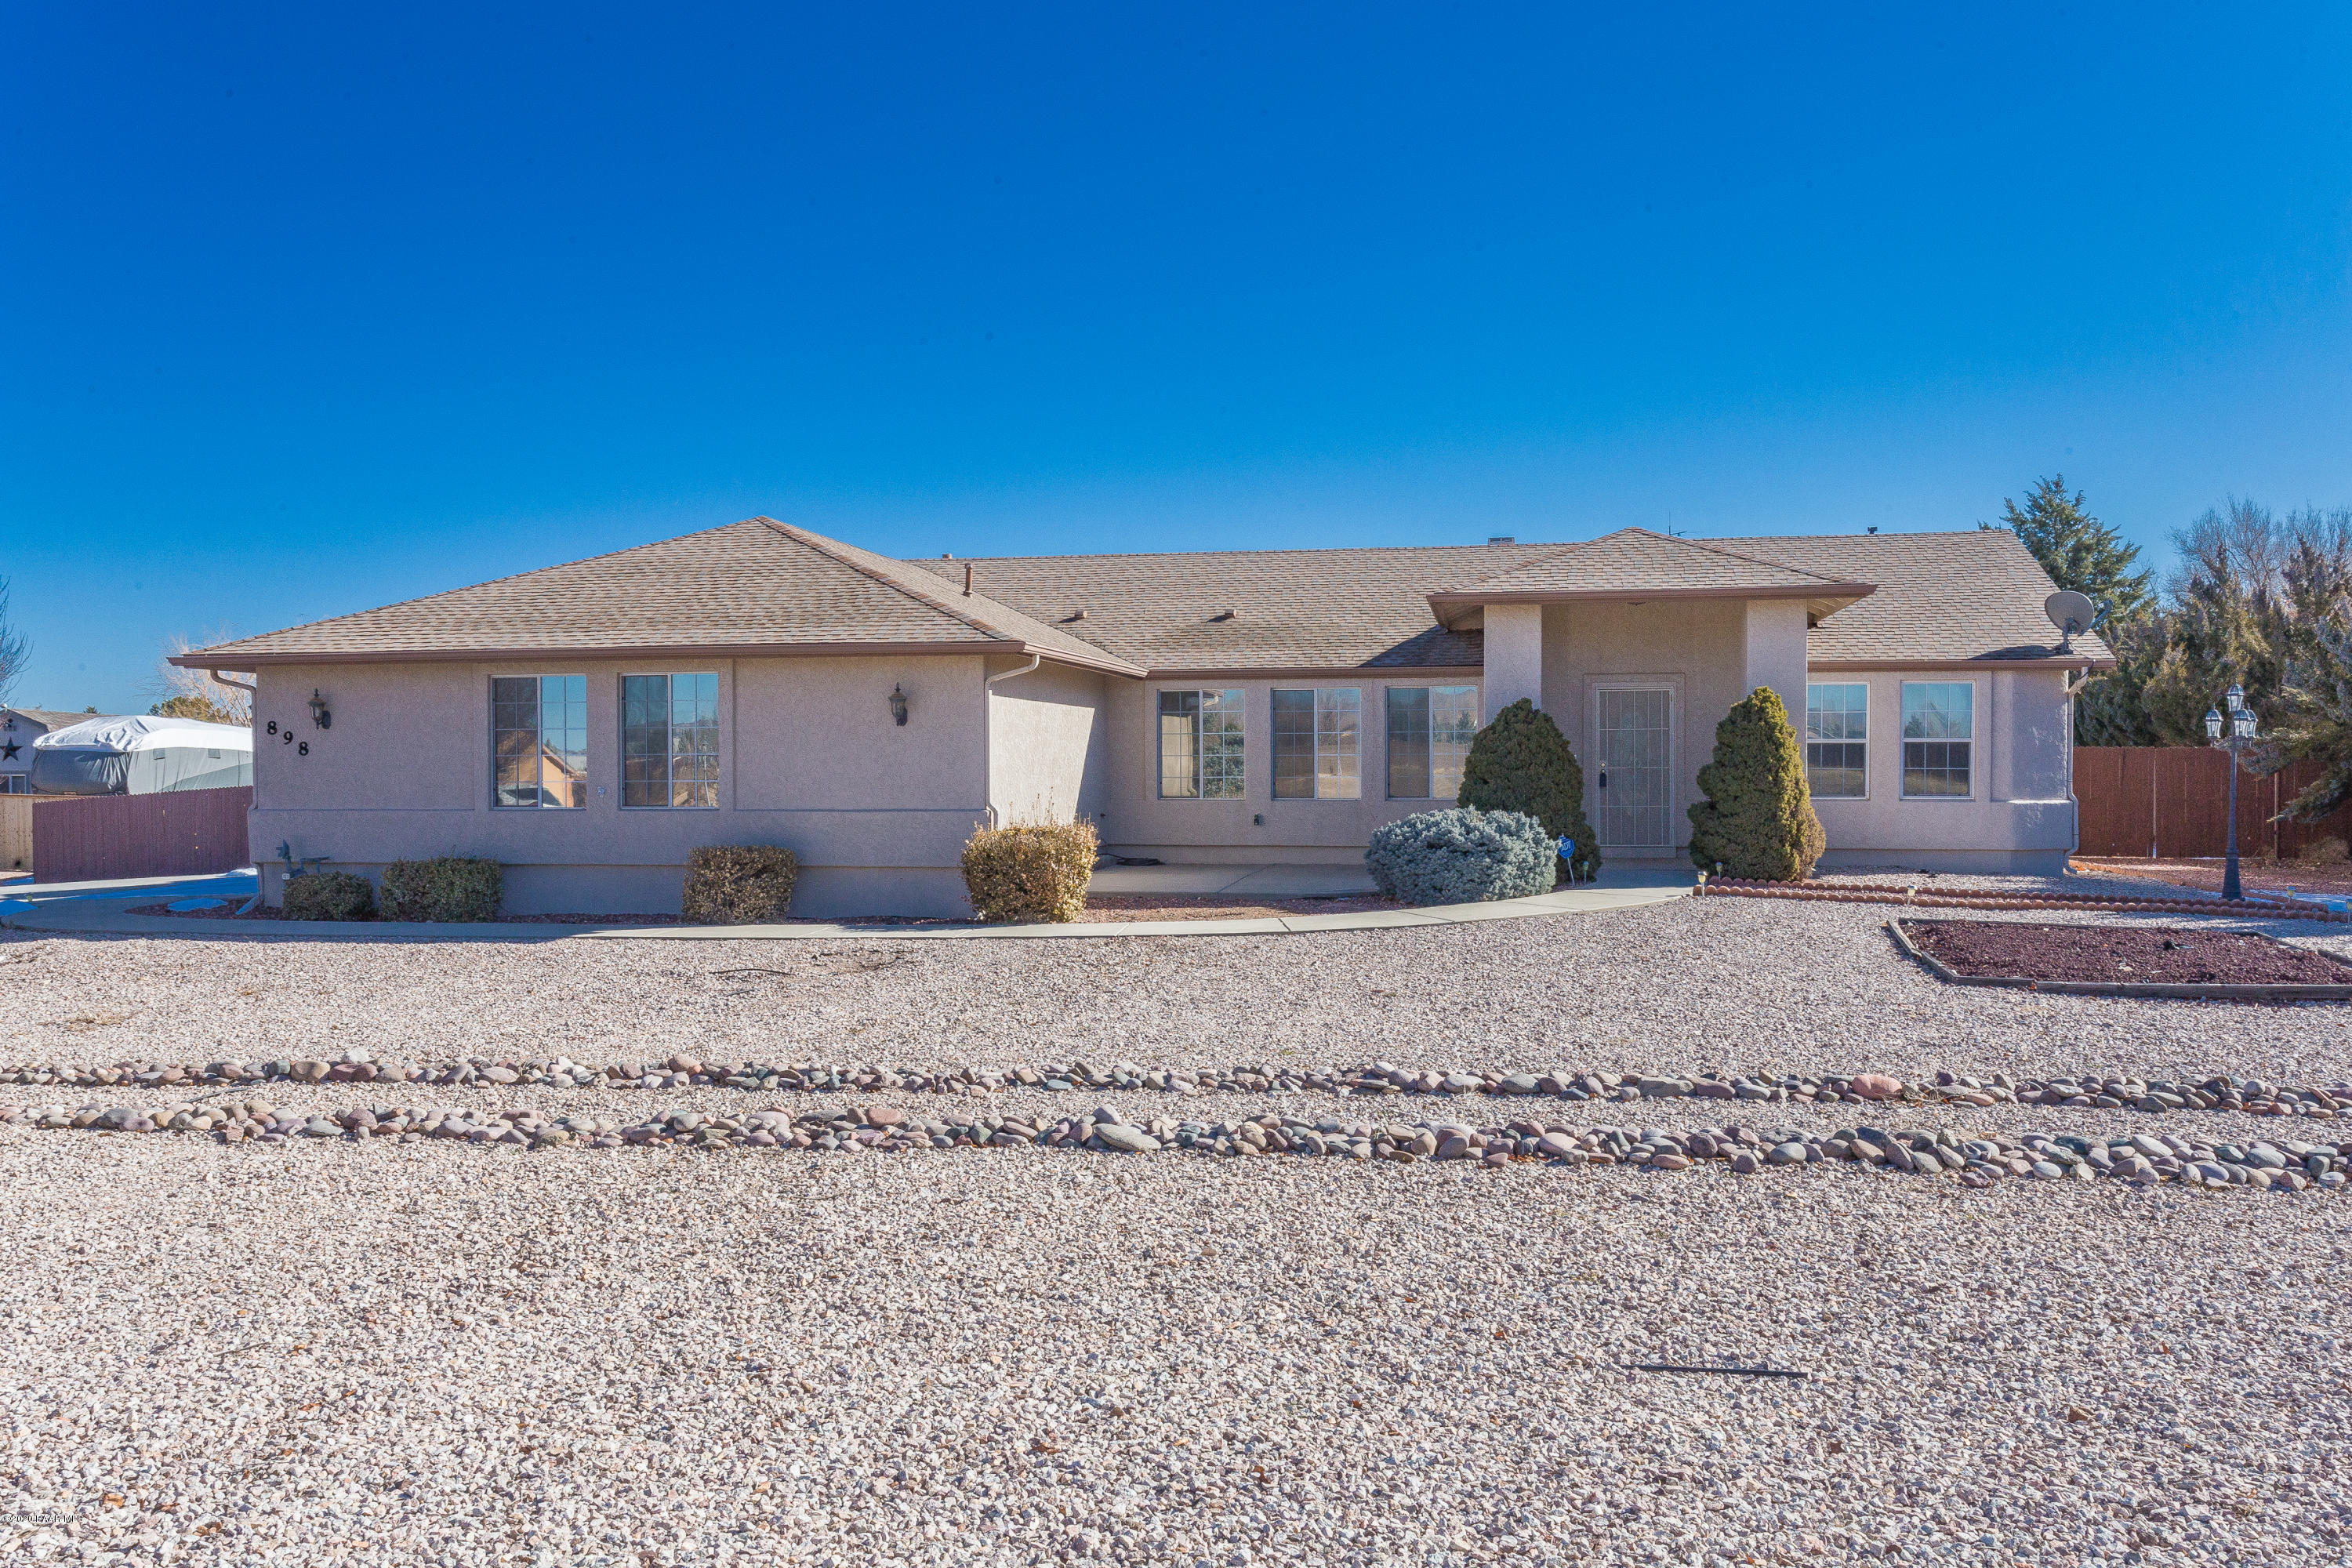 Photo of 898 Tiffany, Chino Valley, AZ 86323